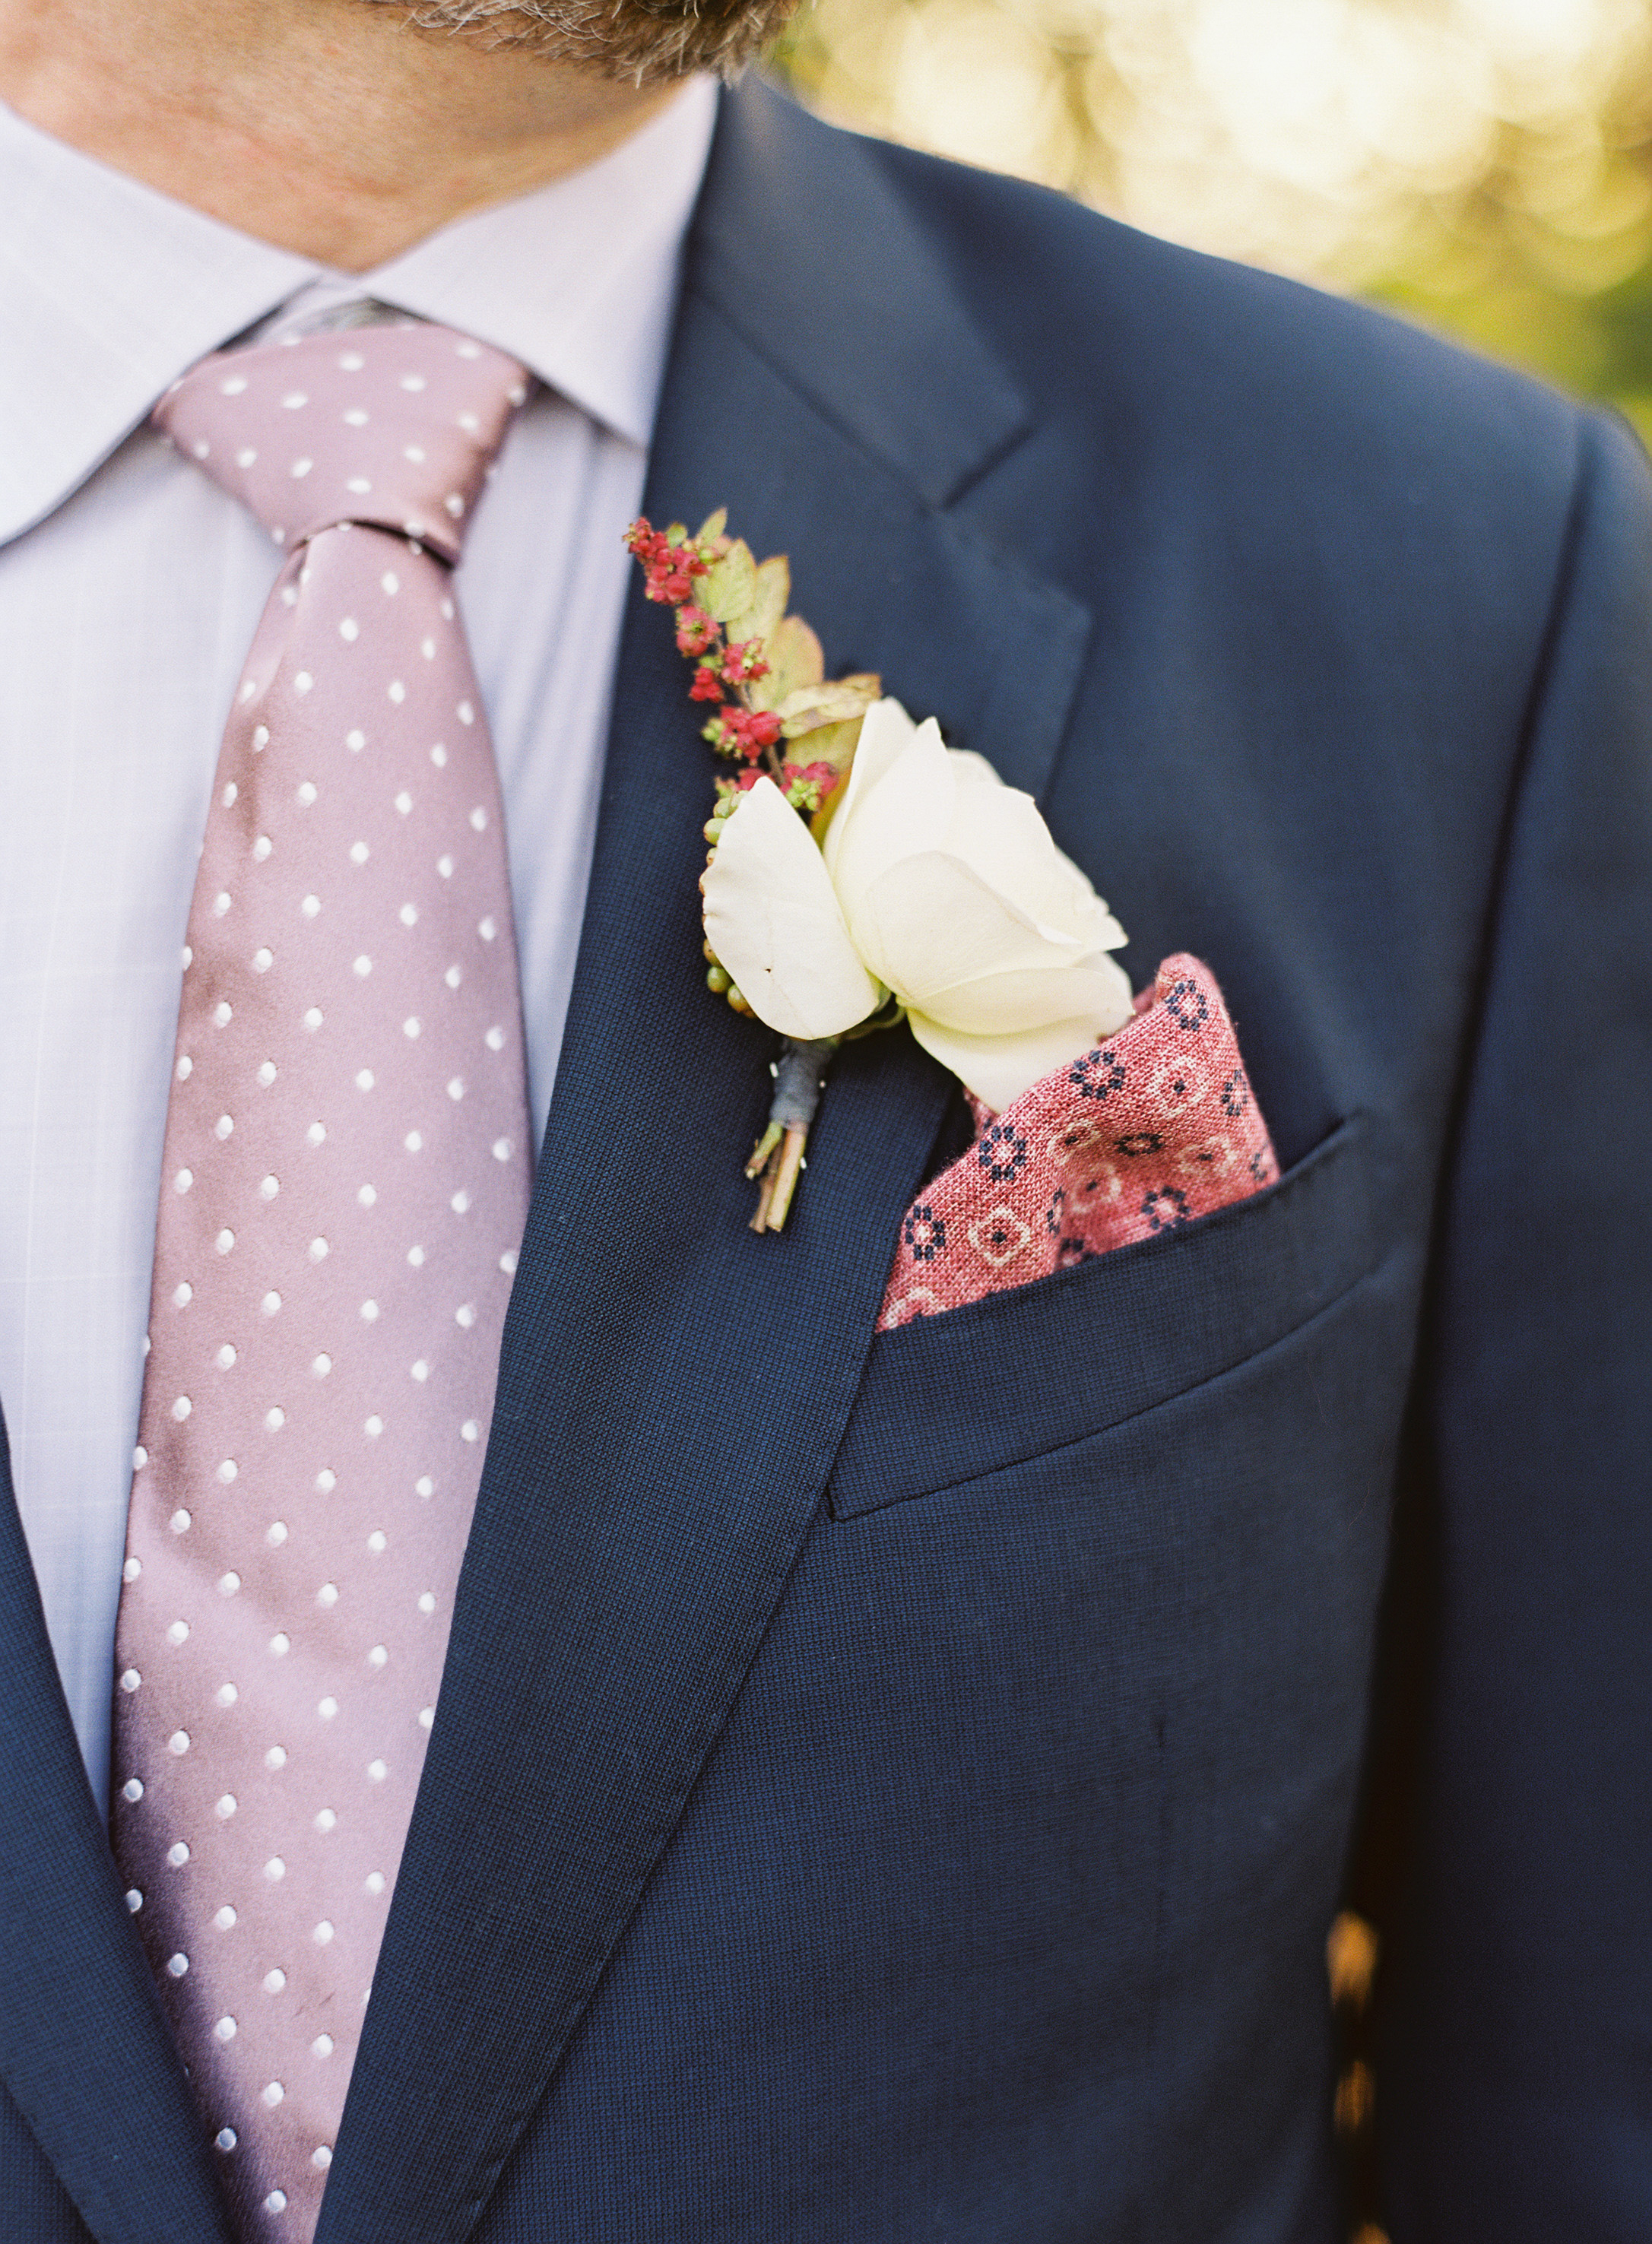 red-and-white boutonniere